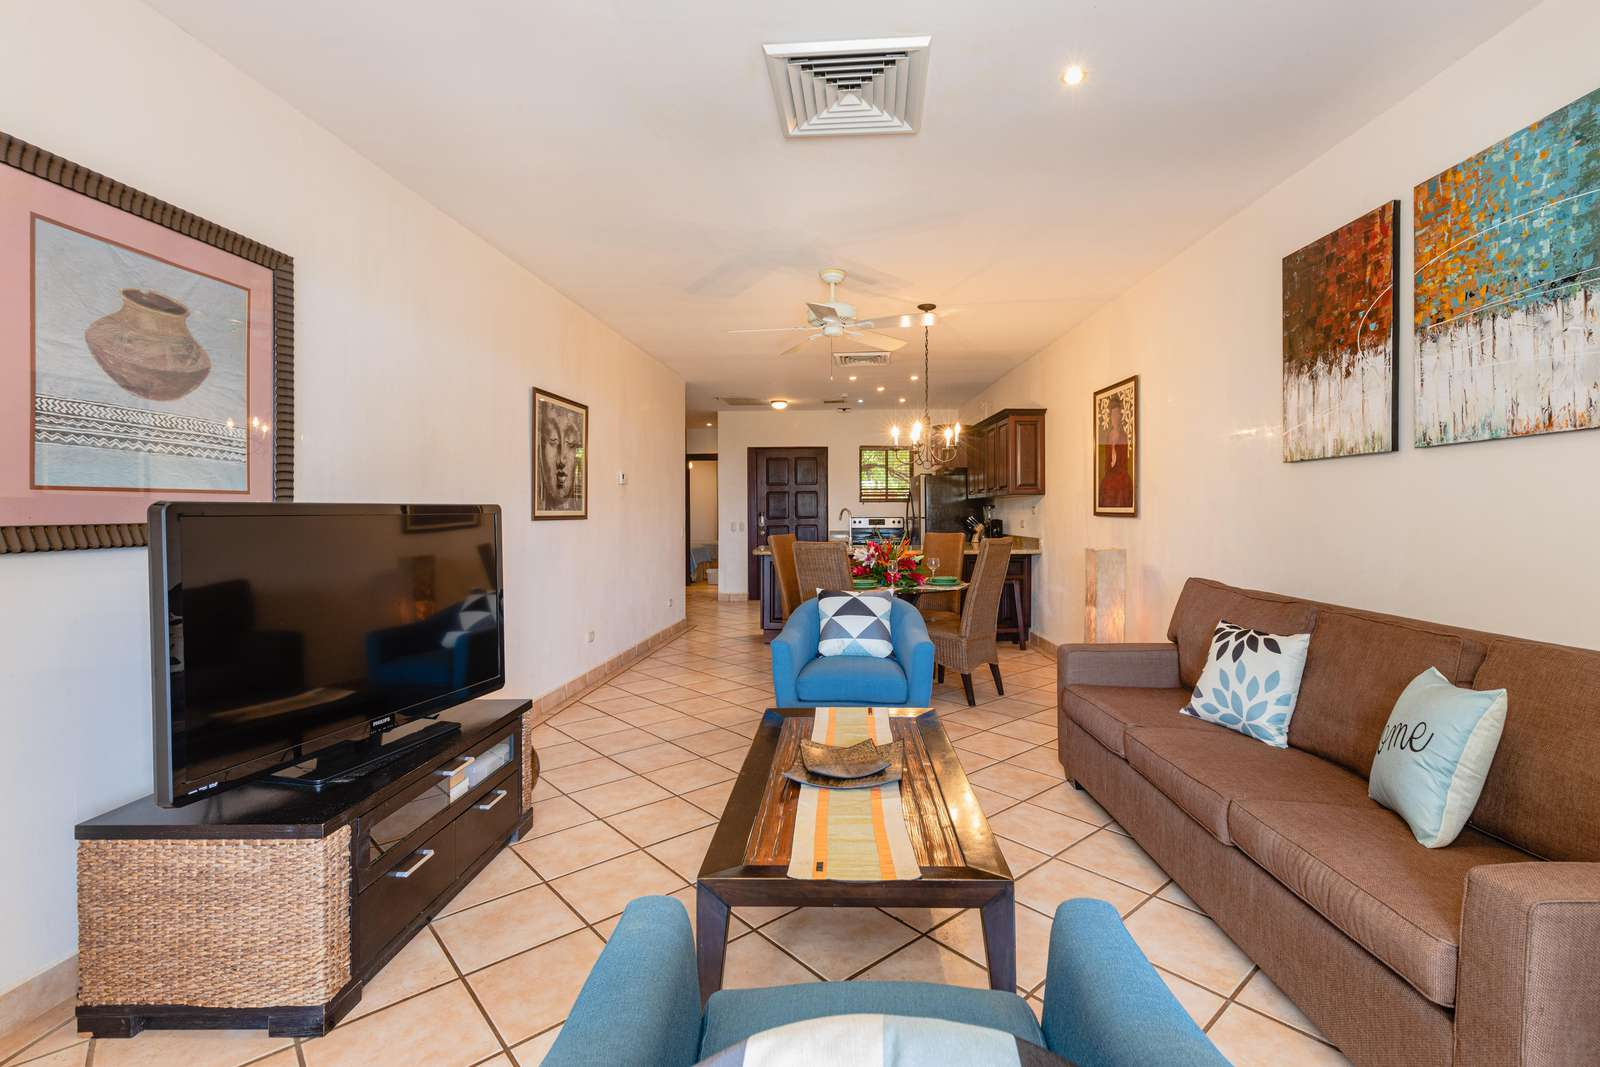 Living area, Flat screen TV, view towards kitchen and dining area